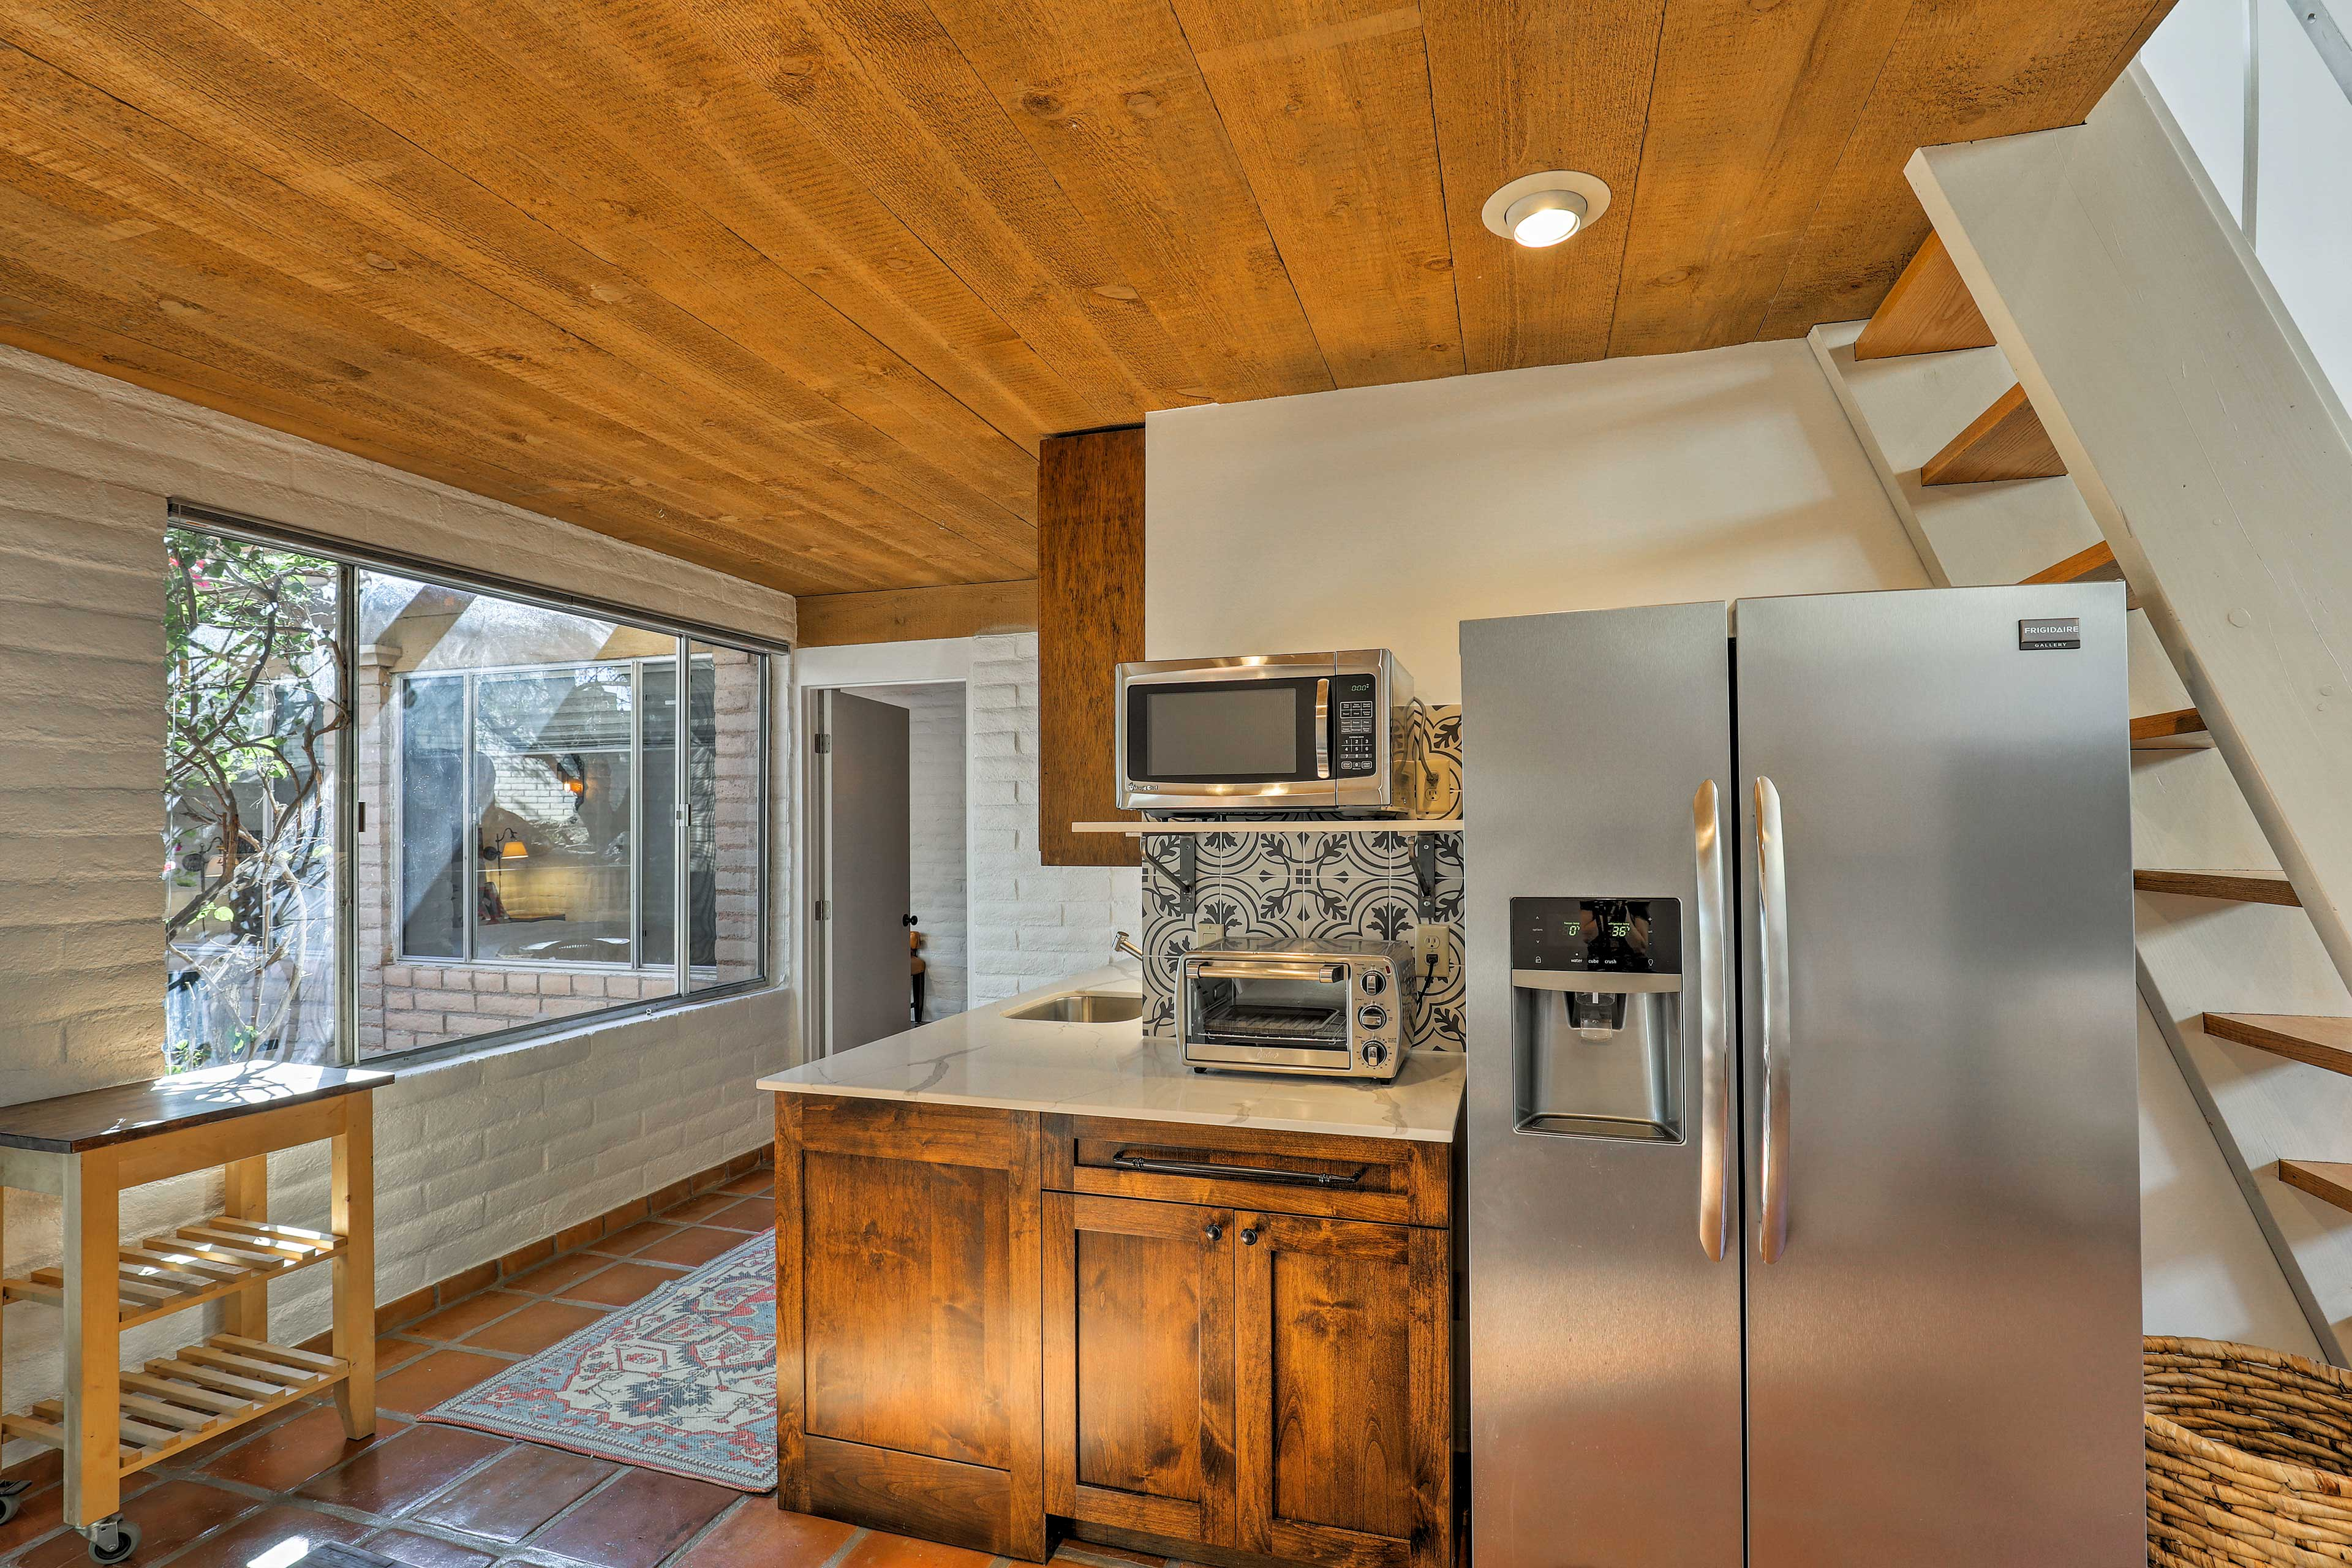 The well-equipped kitchenette boasts stainless steel appliances.